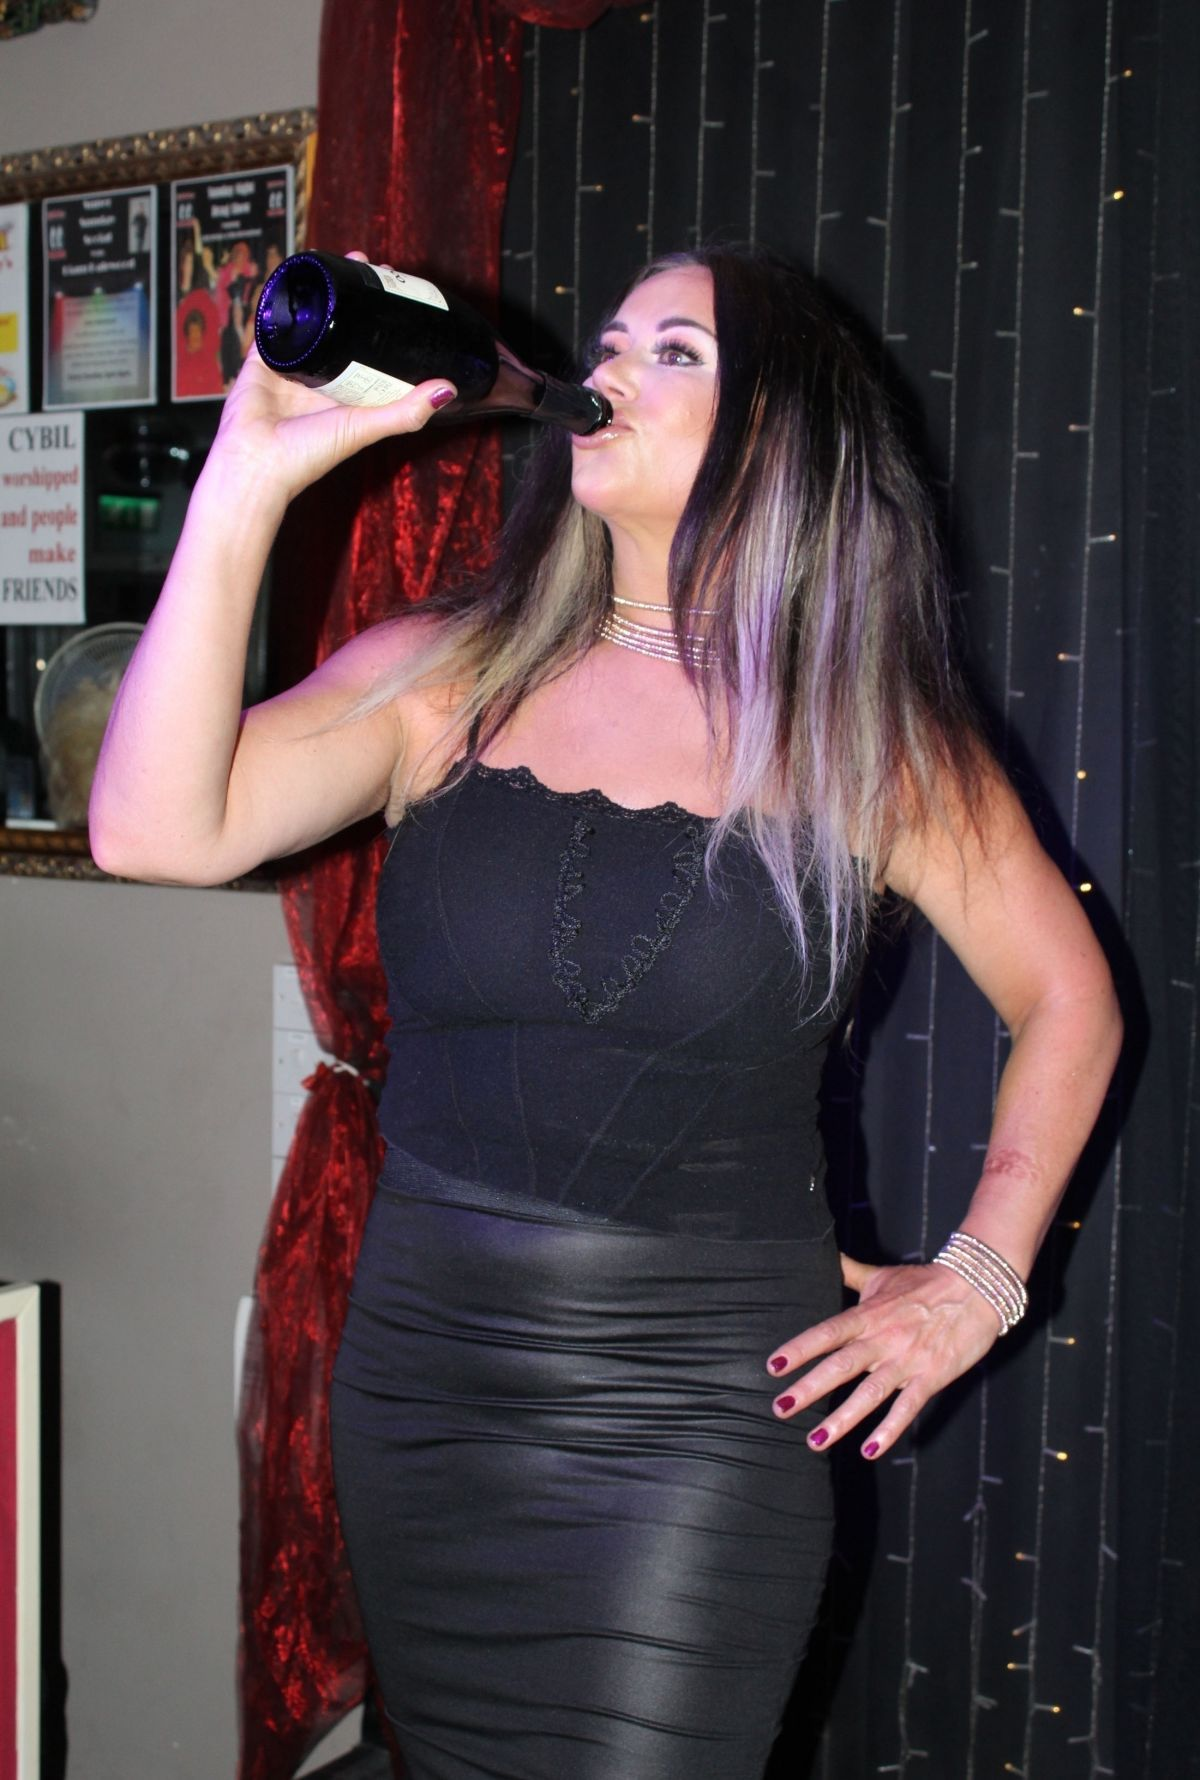 LISA APPLETON Celebrate Her 50th Birthday In Blackpool 05 22 2018